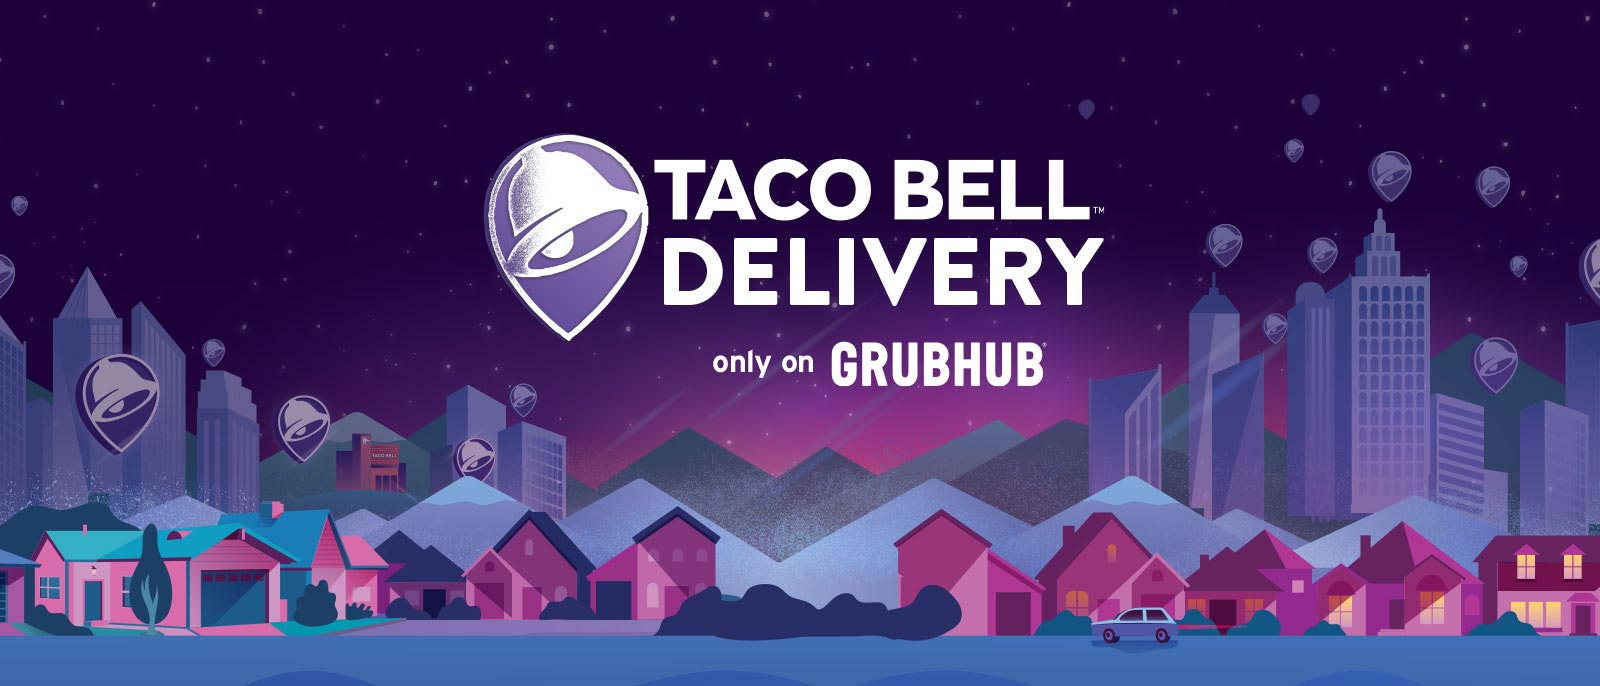 Get free delivery on your Taco Bell order of $12 or more.